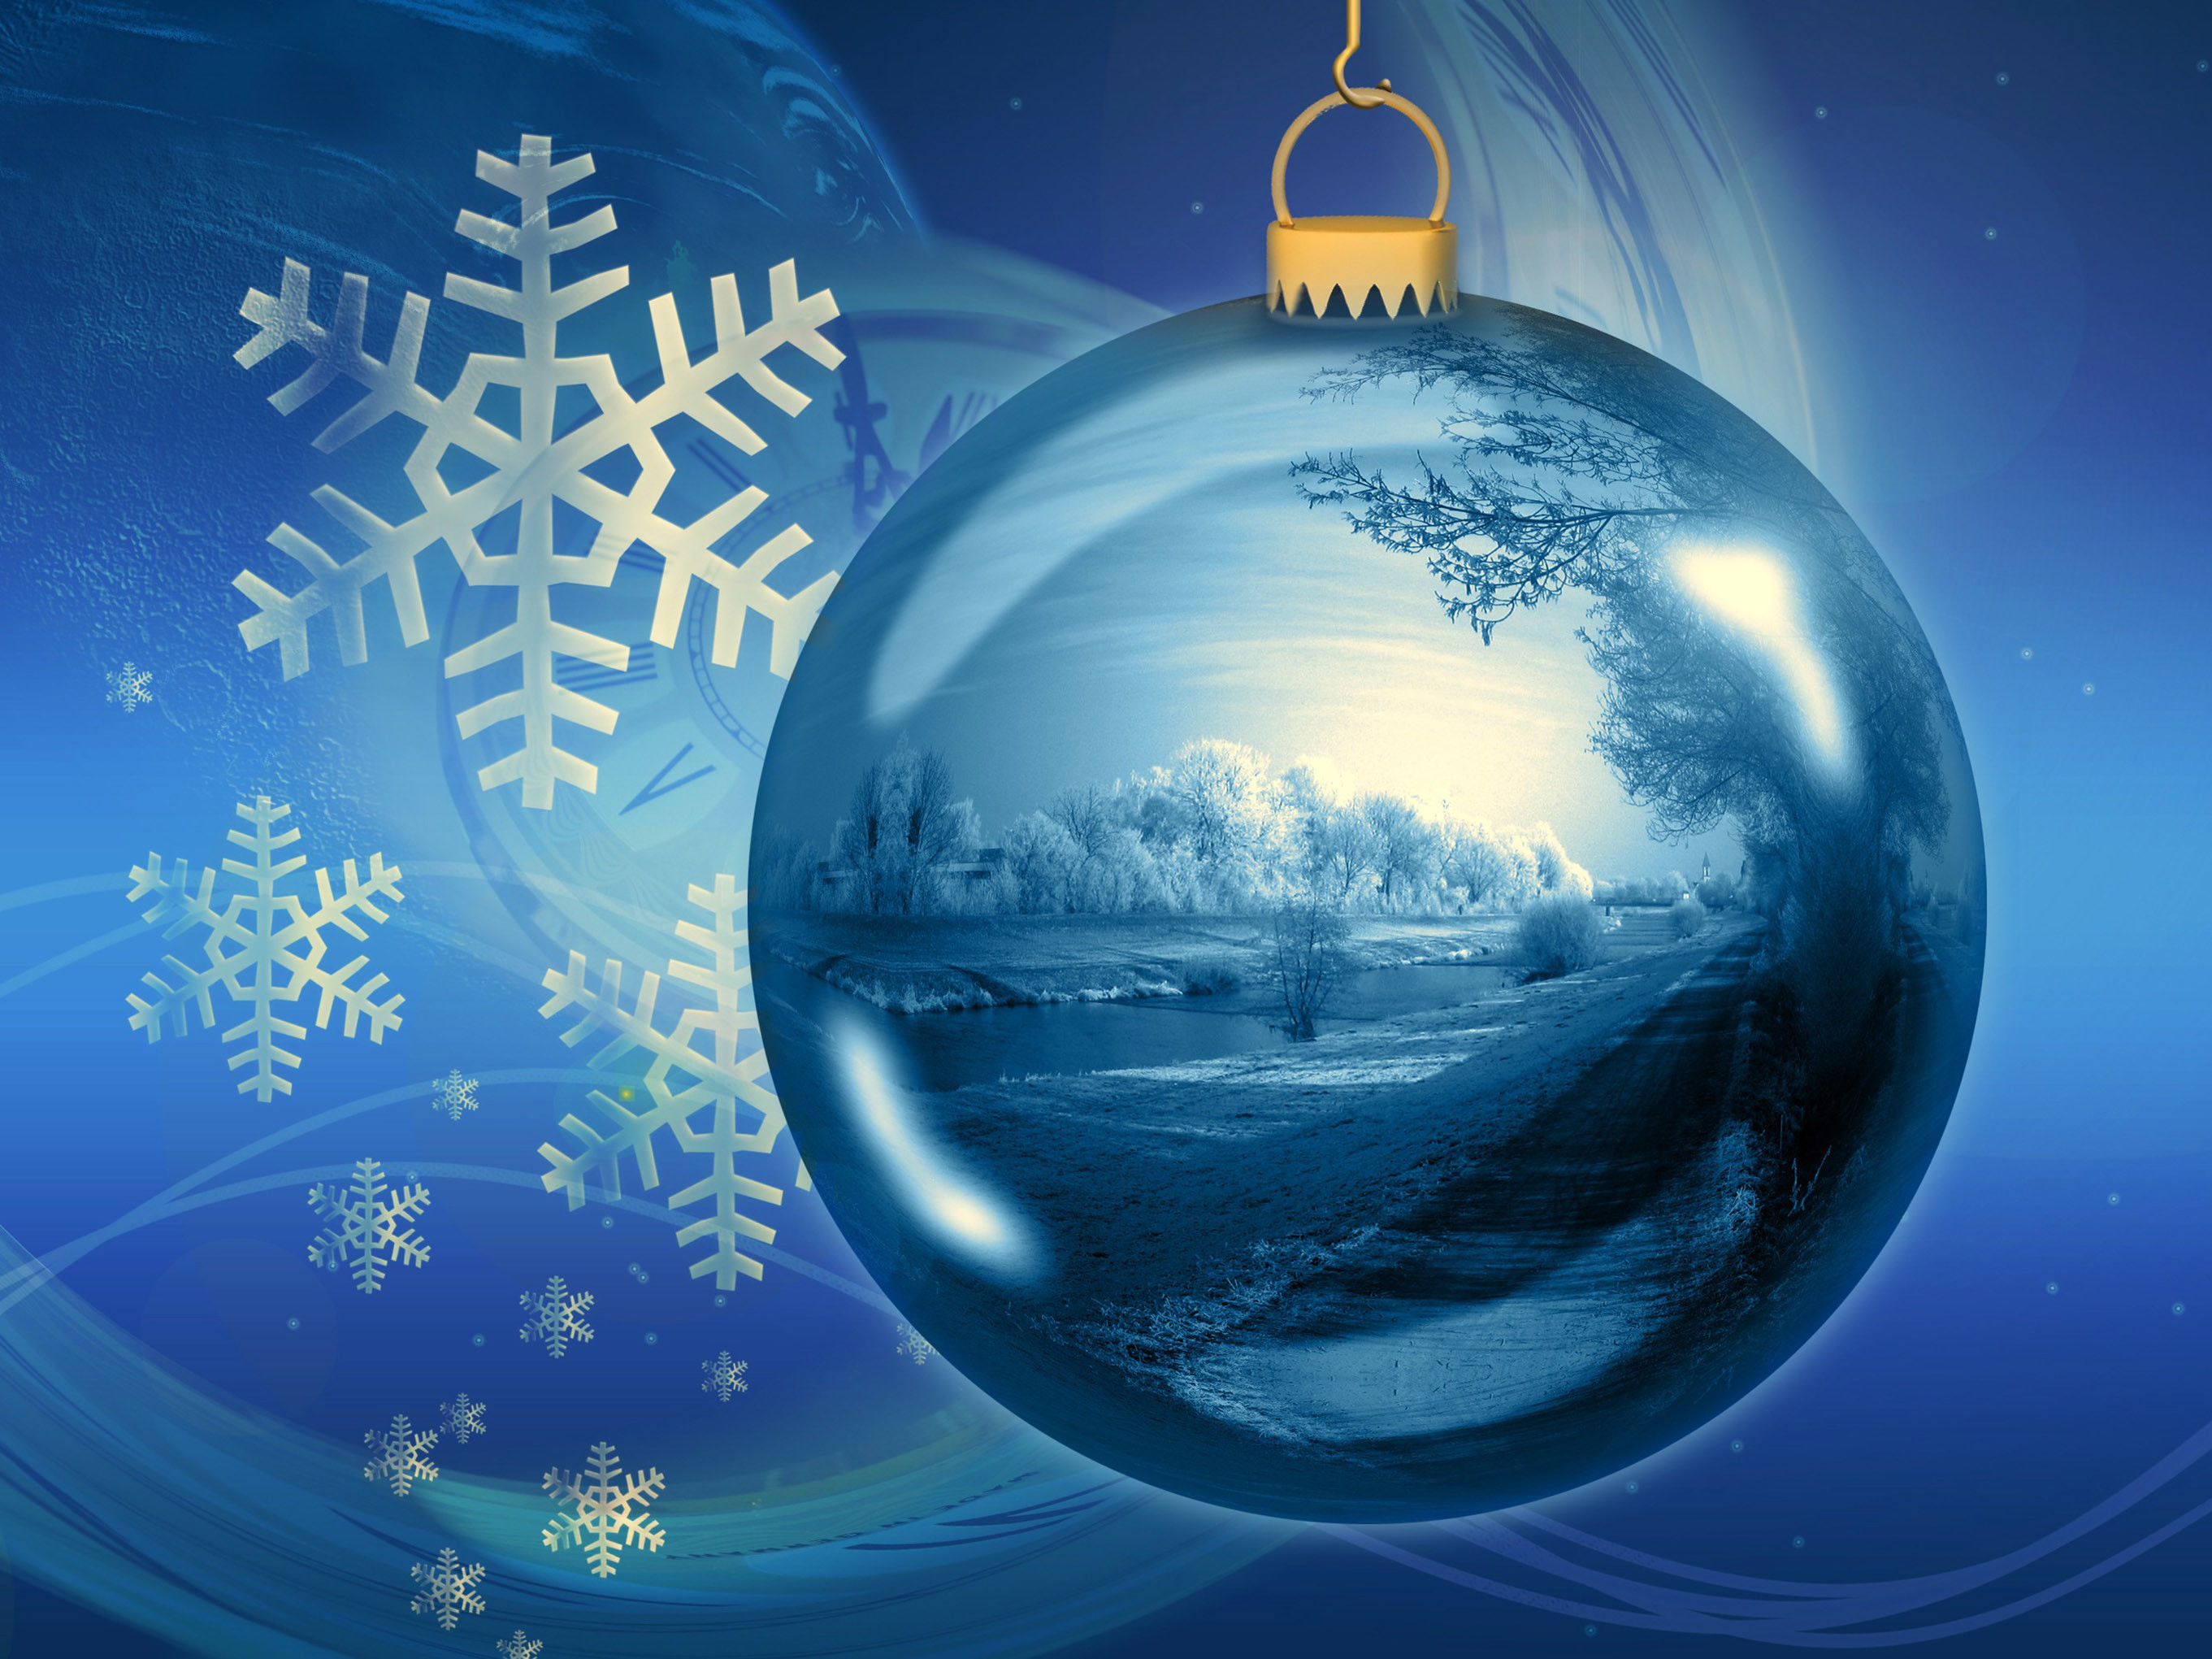 Falling Snow Wallpaper Animated Iphone Christmas Snow Globe Wallpaper 63 Images